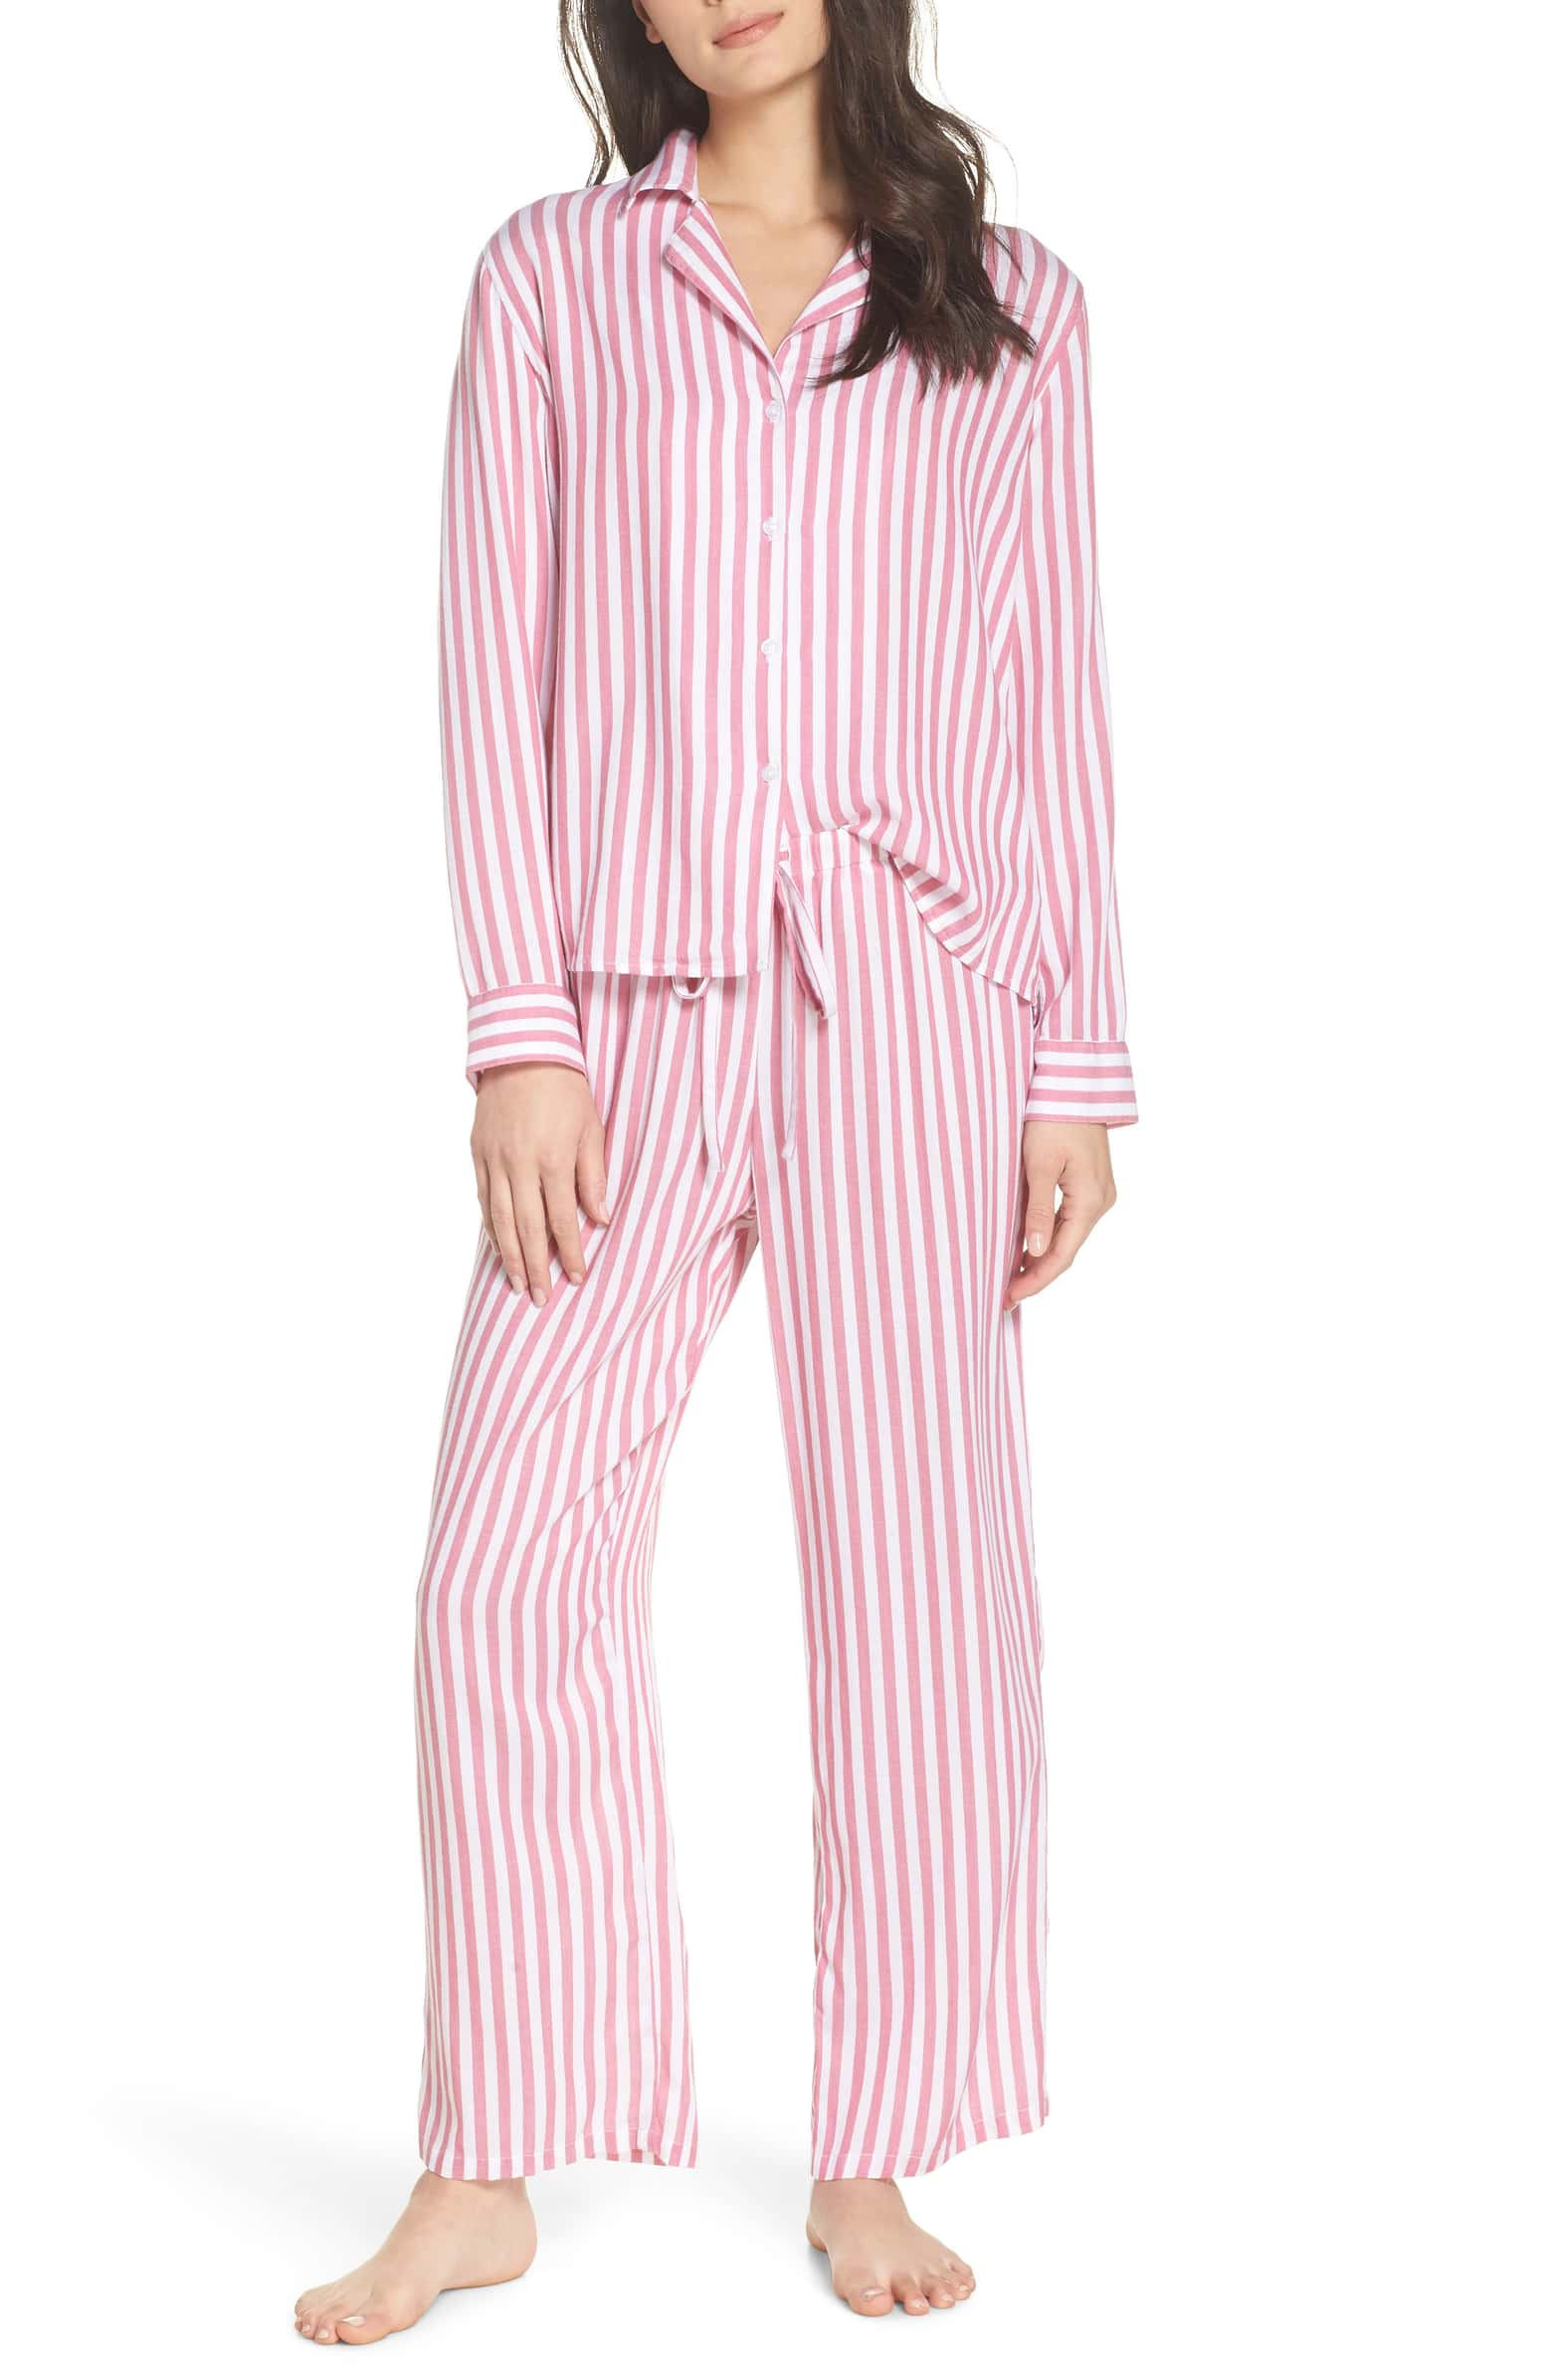 Rails PJ Set - I'll admit I am not the best at wearing matching pajamas, but I love the idea of it. Striped pajamas are so cute to me. Maybe this will be the season I change my ways!